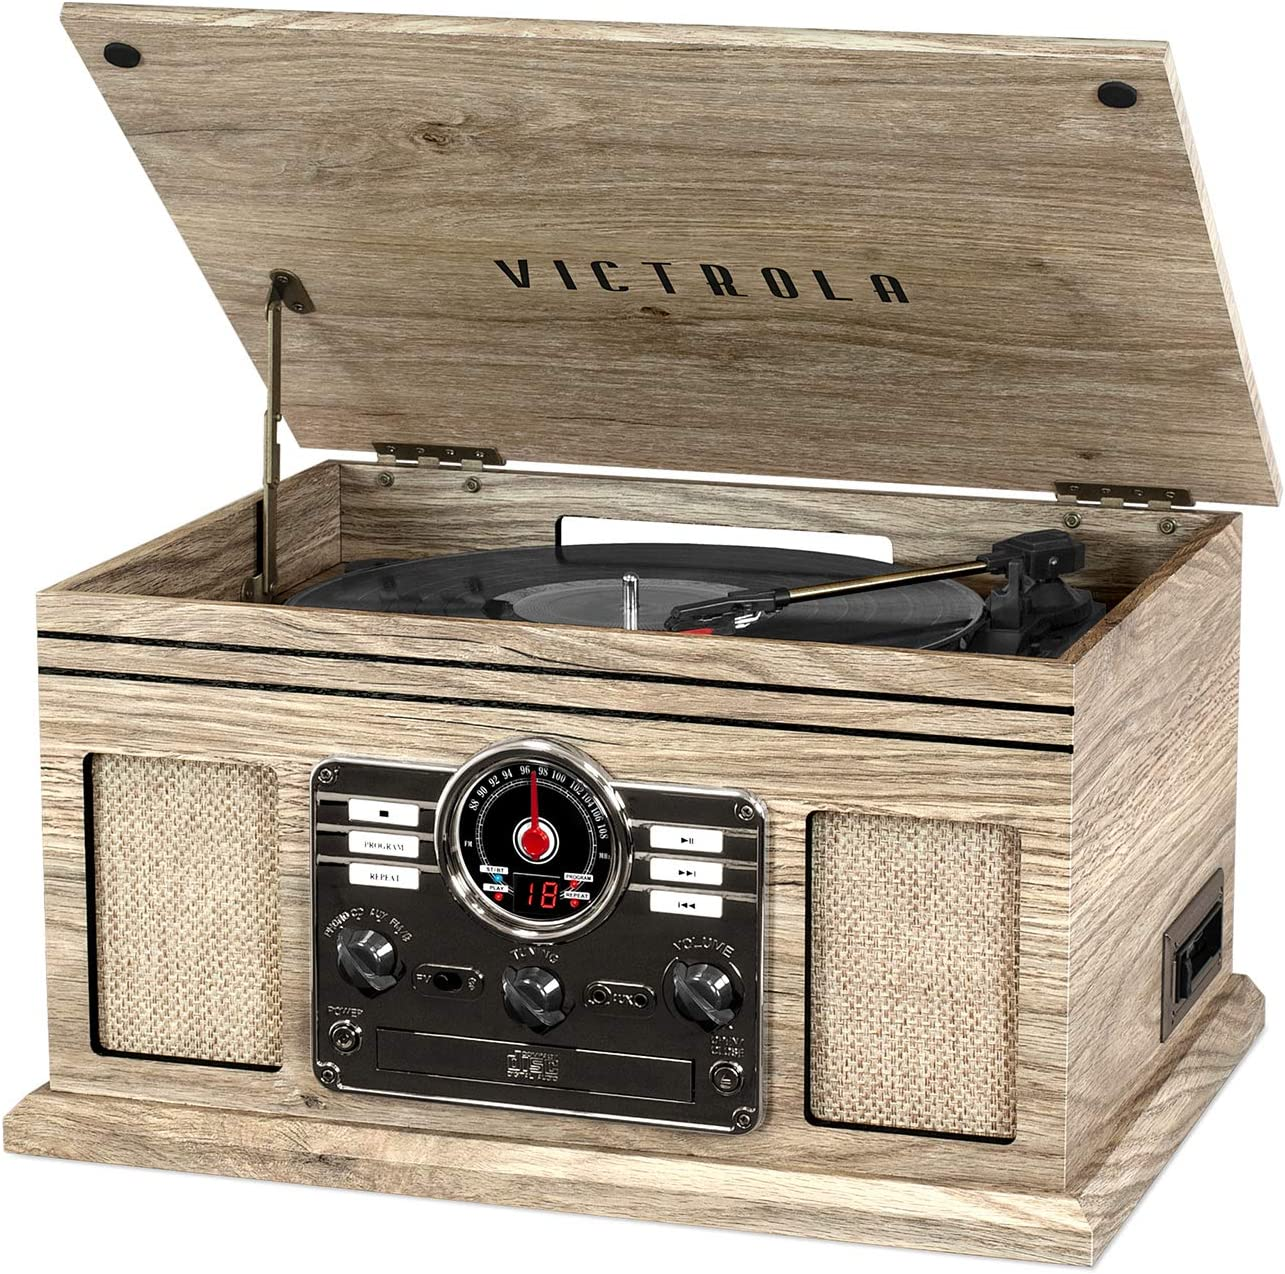 Victrola Nostalgic 6-in-1 Bluetooth Record Player & Multimedia Center with Built-in Speakers - 3-Speed Turntable, CD & Cassette Player, AM/FM Radio | Wireless Music Streaming | Farmhouse Oatmeal